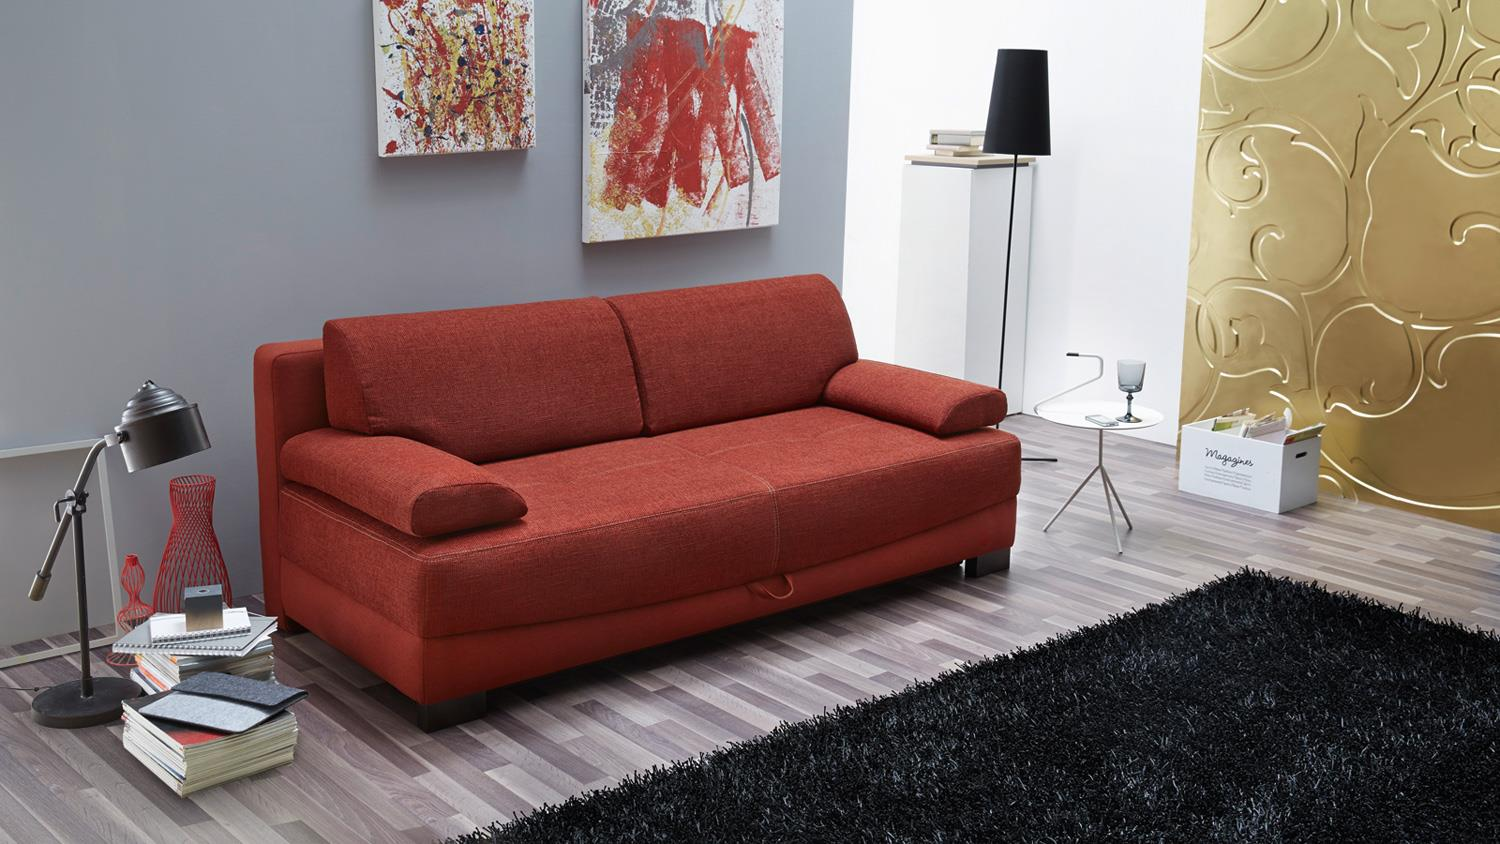 funktionssofa angelosa schlafsofa sofa in rot 200 cm. Black Bedroom Furniture Sets. Home Design Ideas